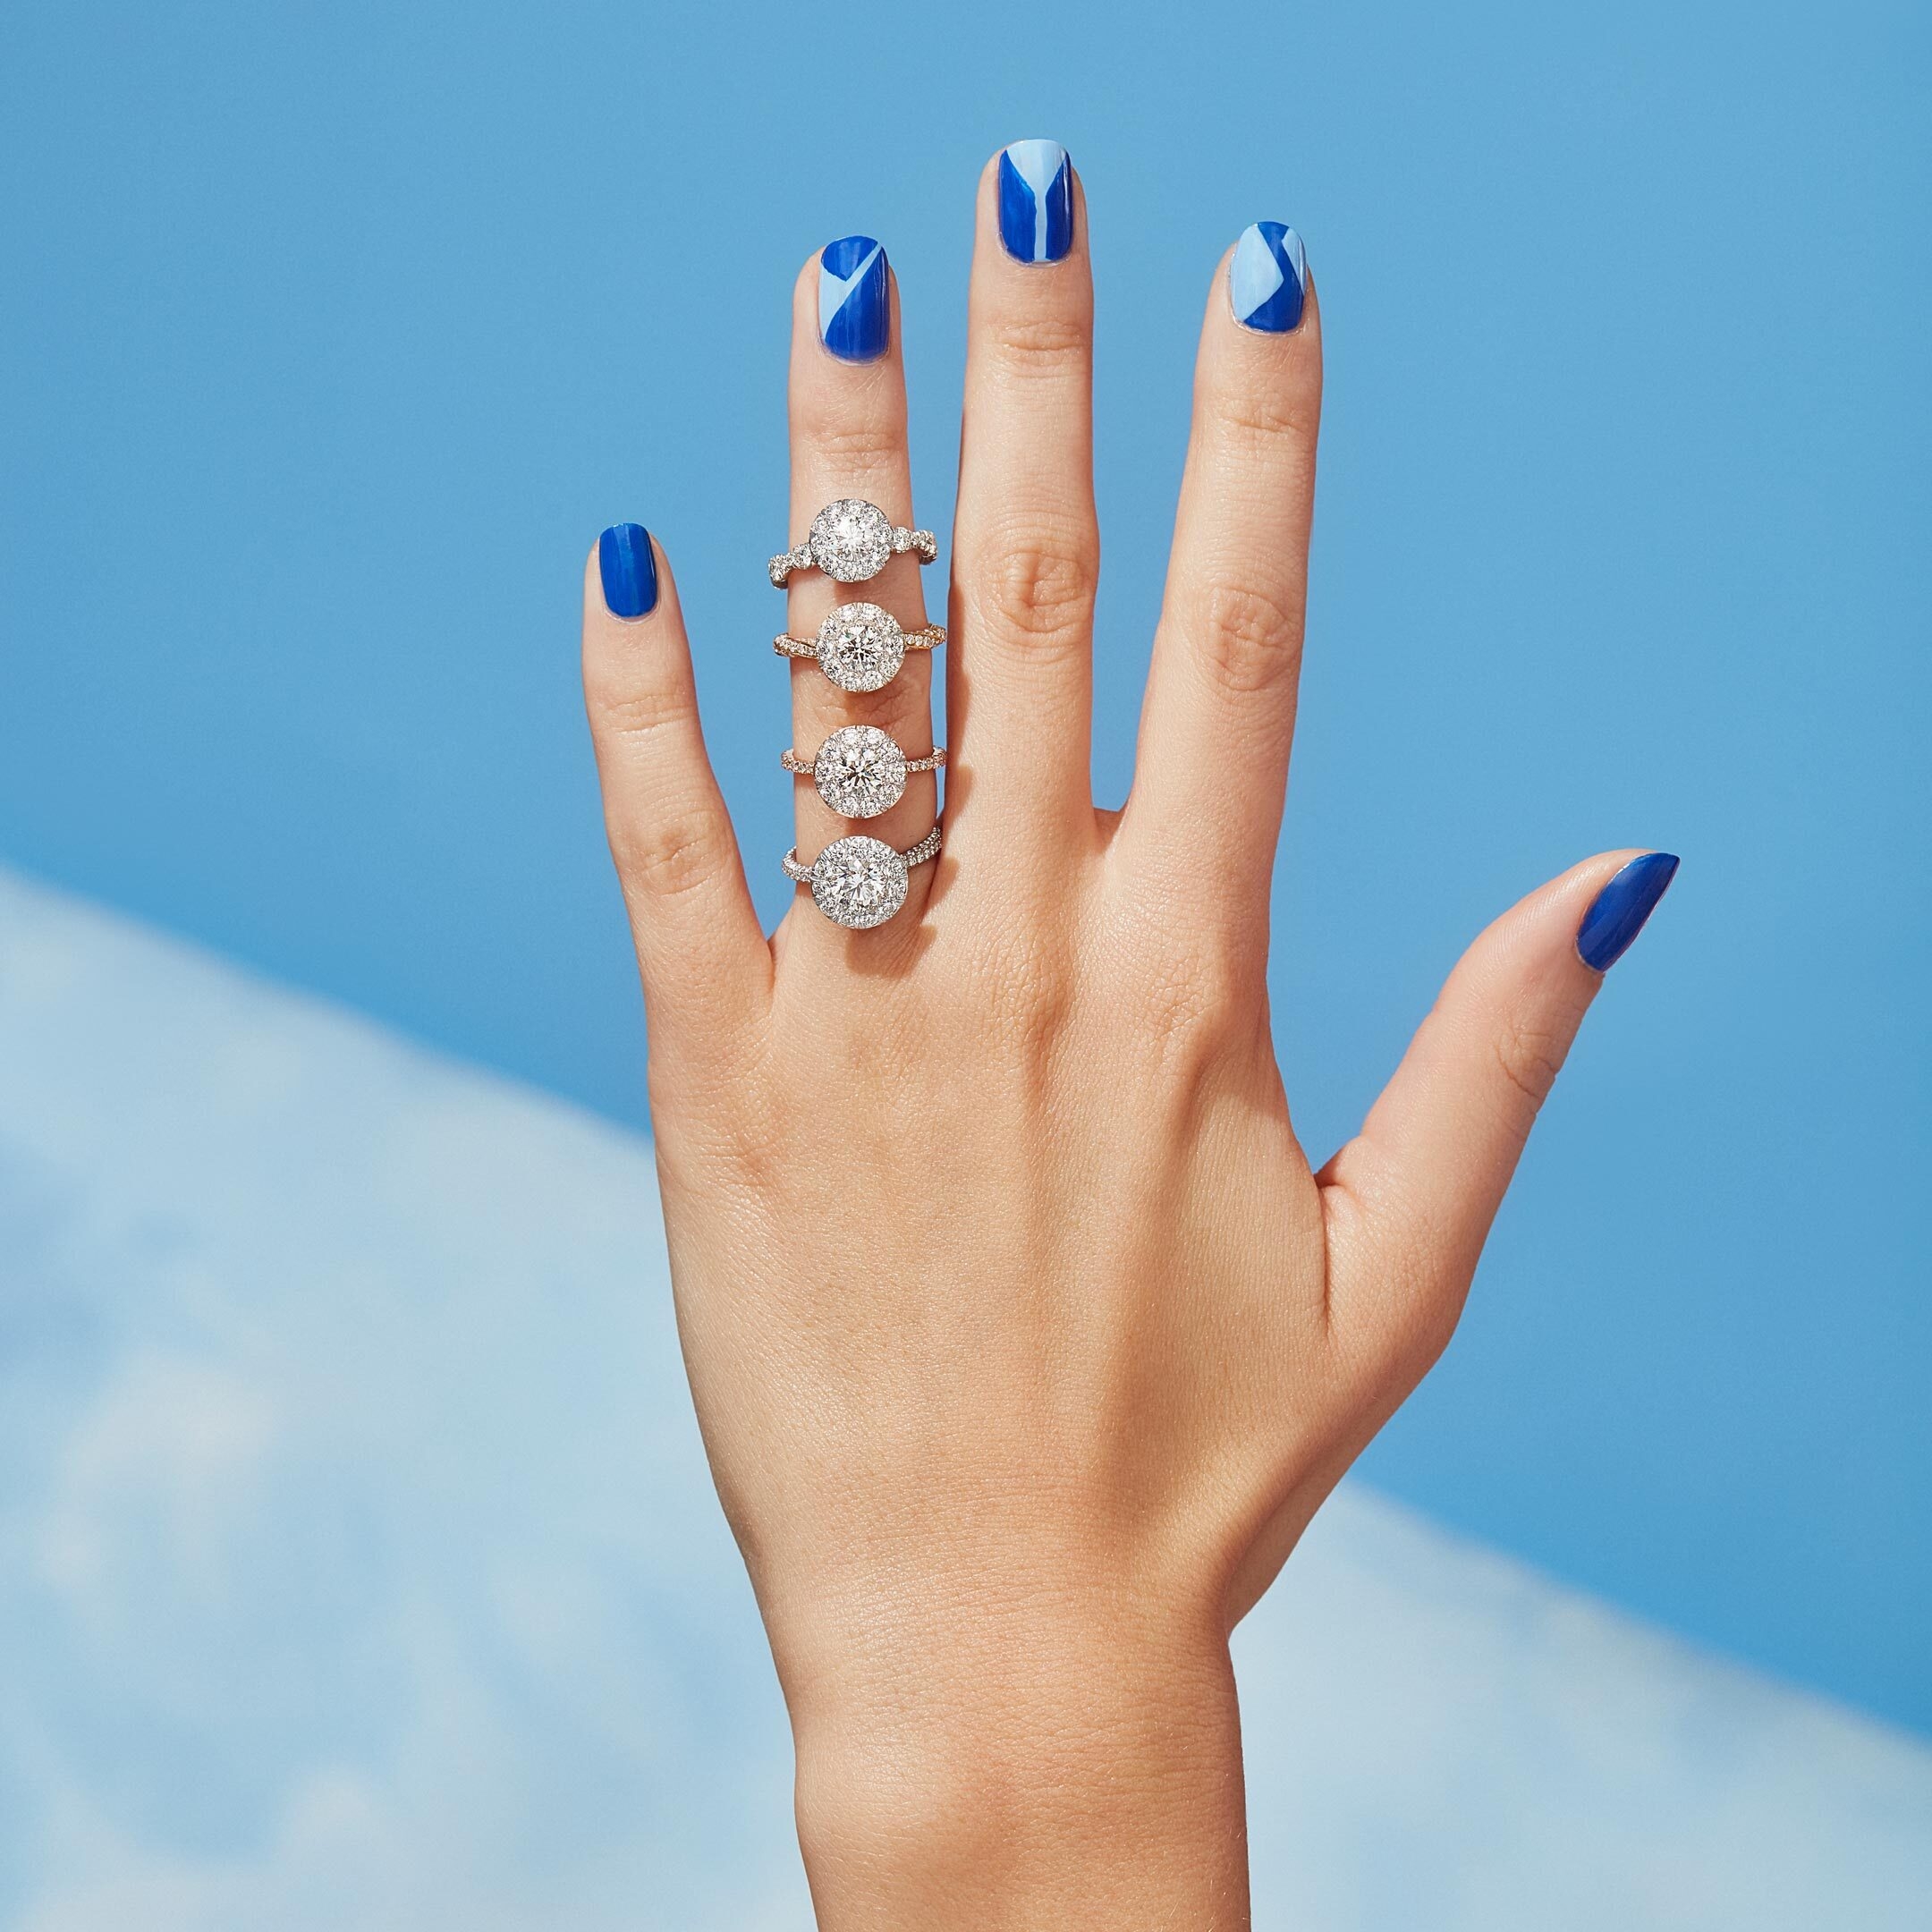 Seamless Solitaire™ Engagement Rings Hand Lifestyle by Oui by Jean Dousset